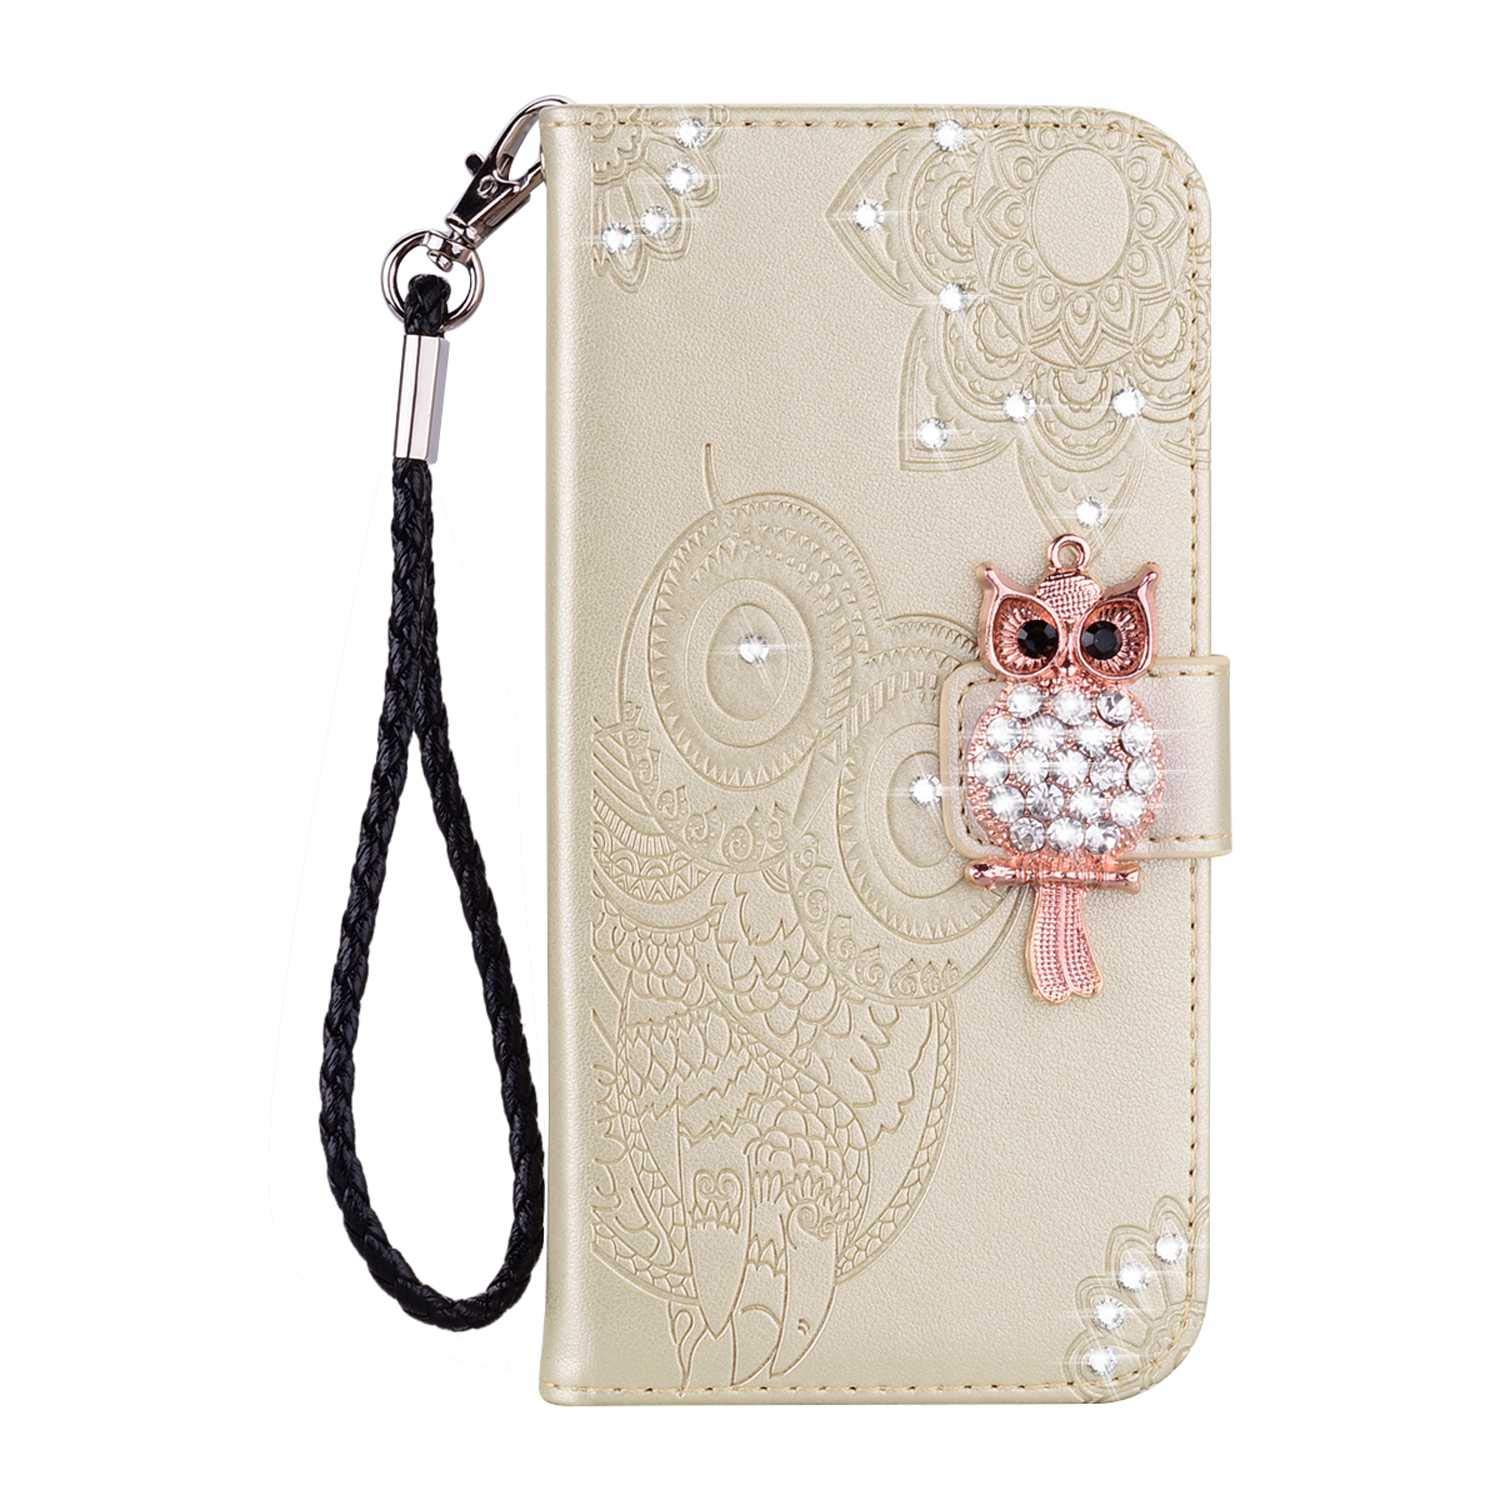 Bear Village Huawei P30 Lite Case, Leather Case with Wrist Strap and Credit Card Slot, Owl Magnetic Closure Shockproof Cover for Huawei P30 Lite, Gold by Bear Village